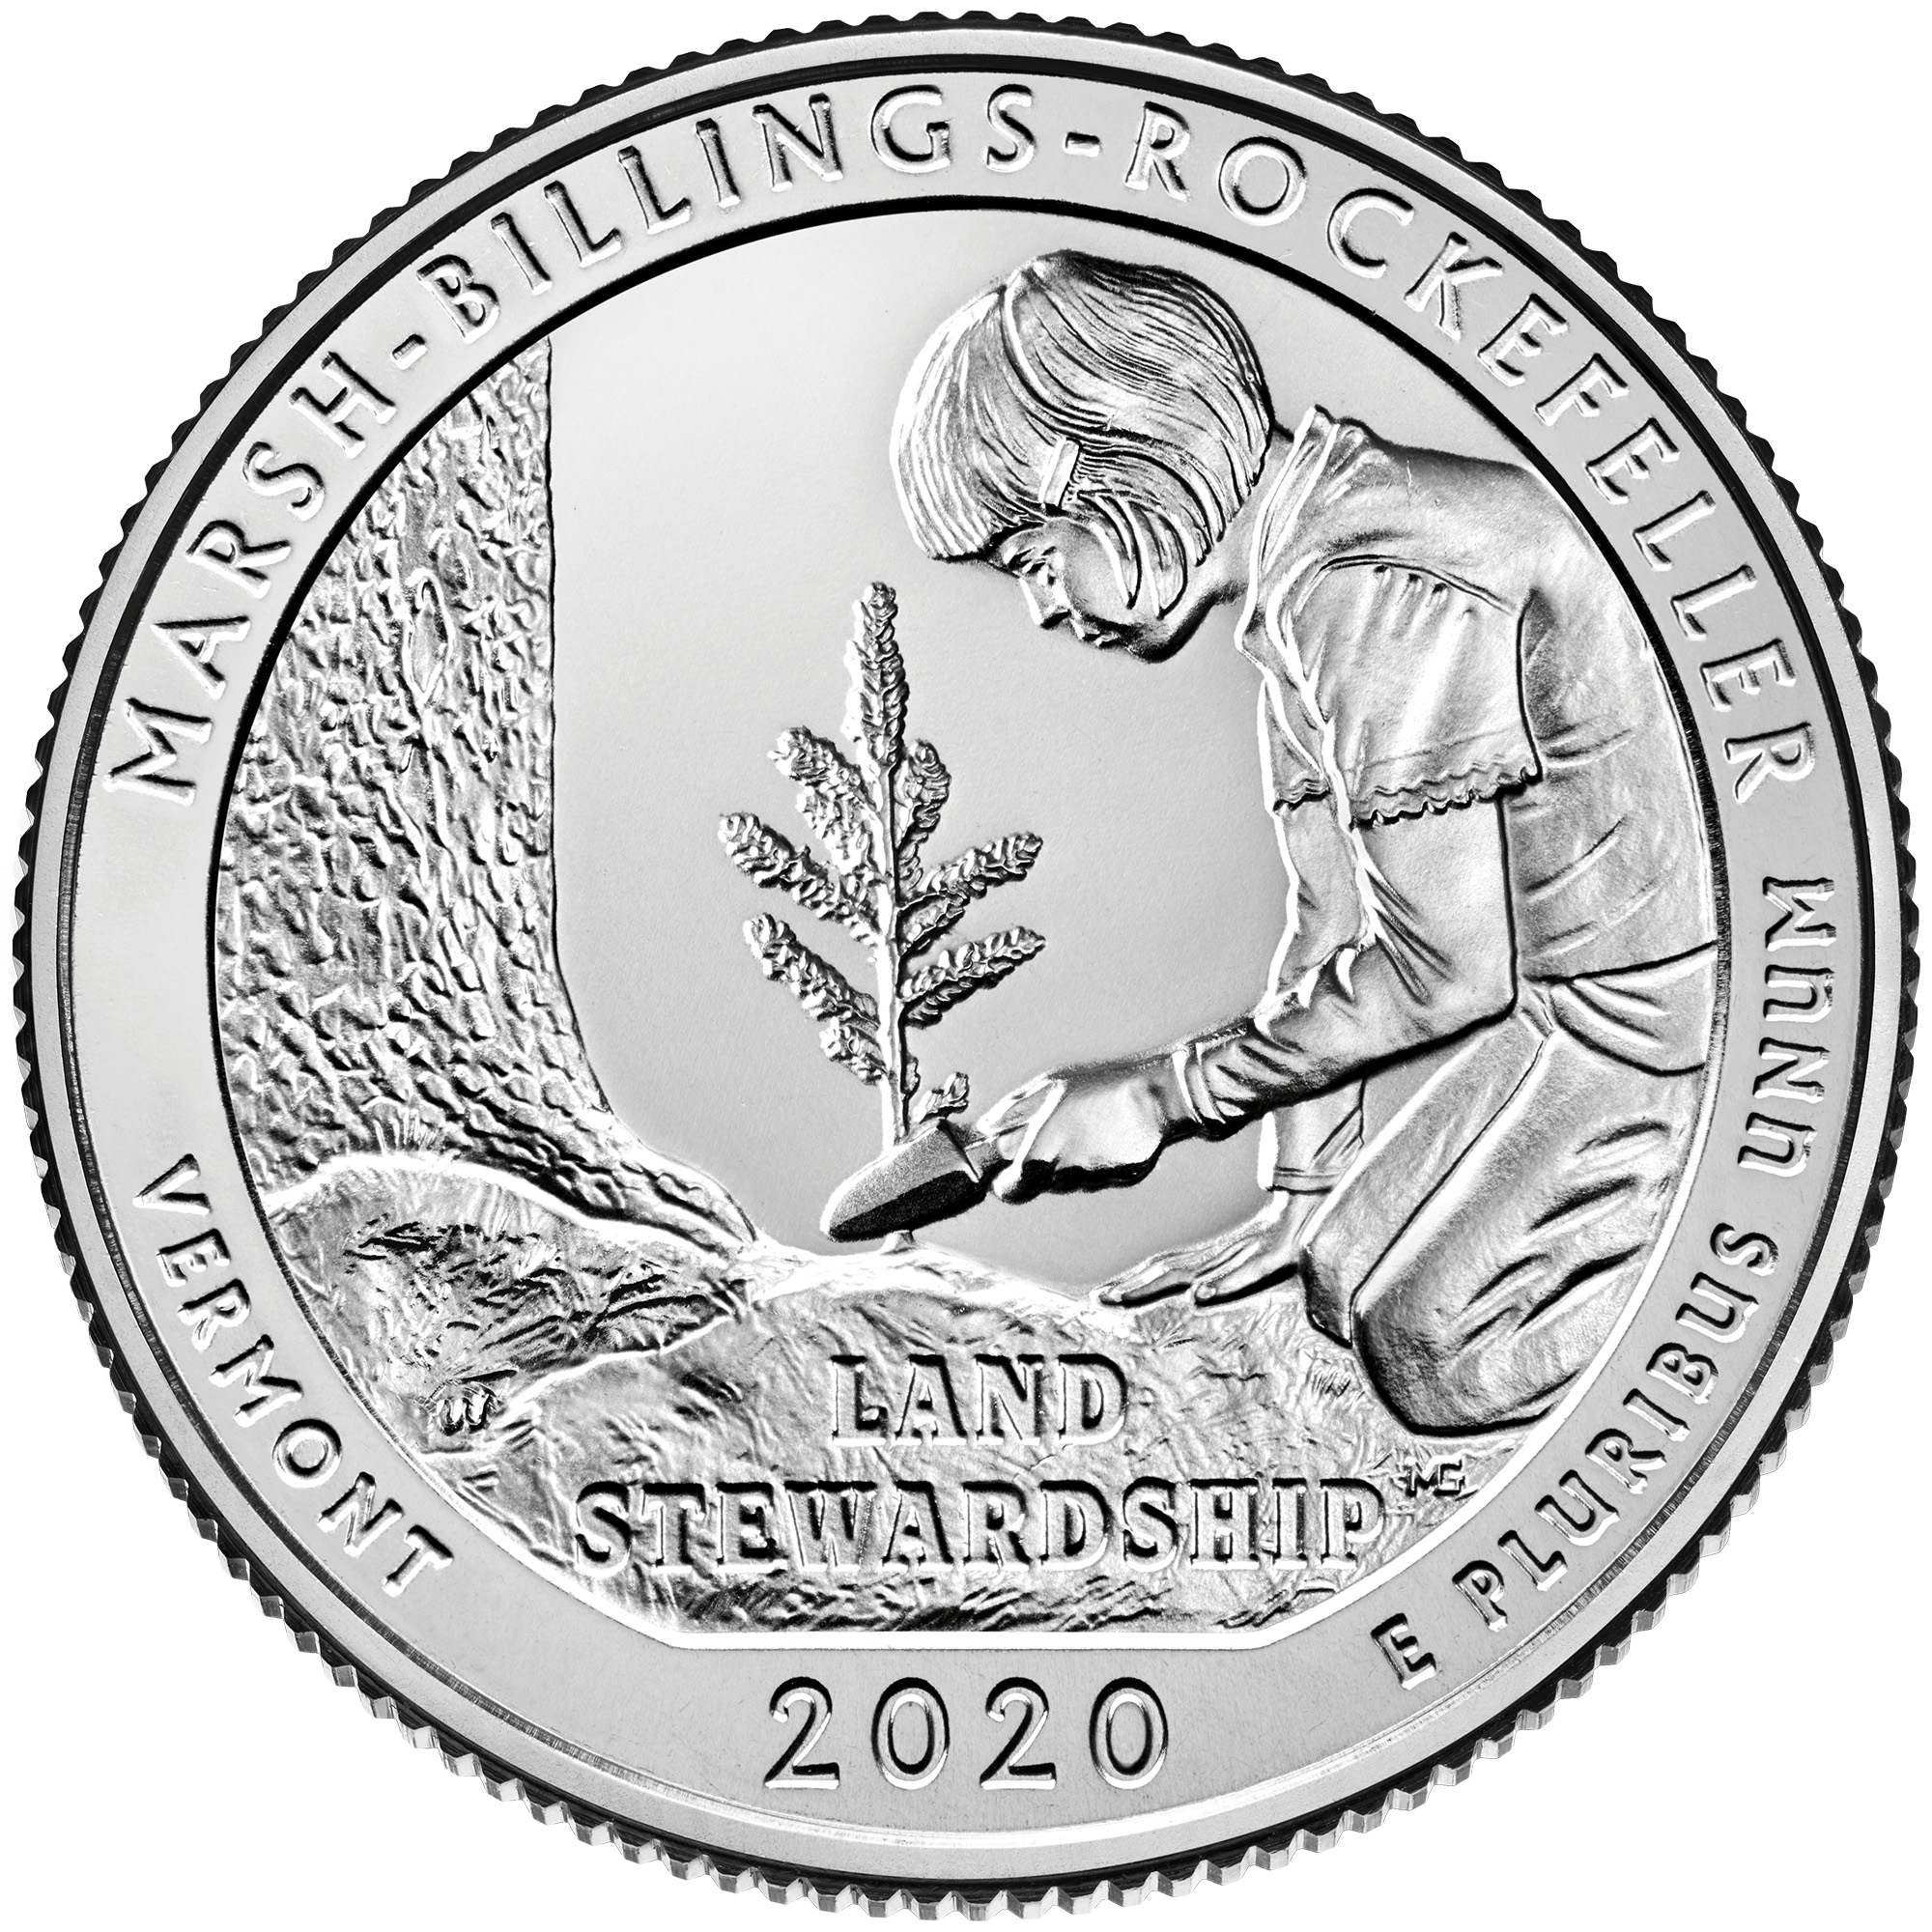 2020 America the Beautiful Quarters Coin Marsh-Billings-Rockefeller Vermont Uncirculated Reverse